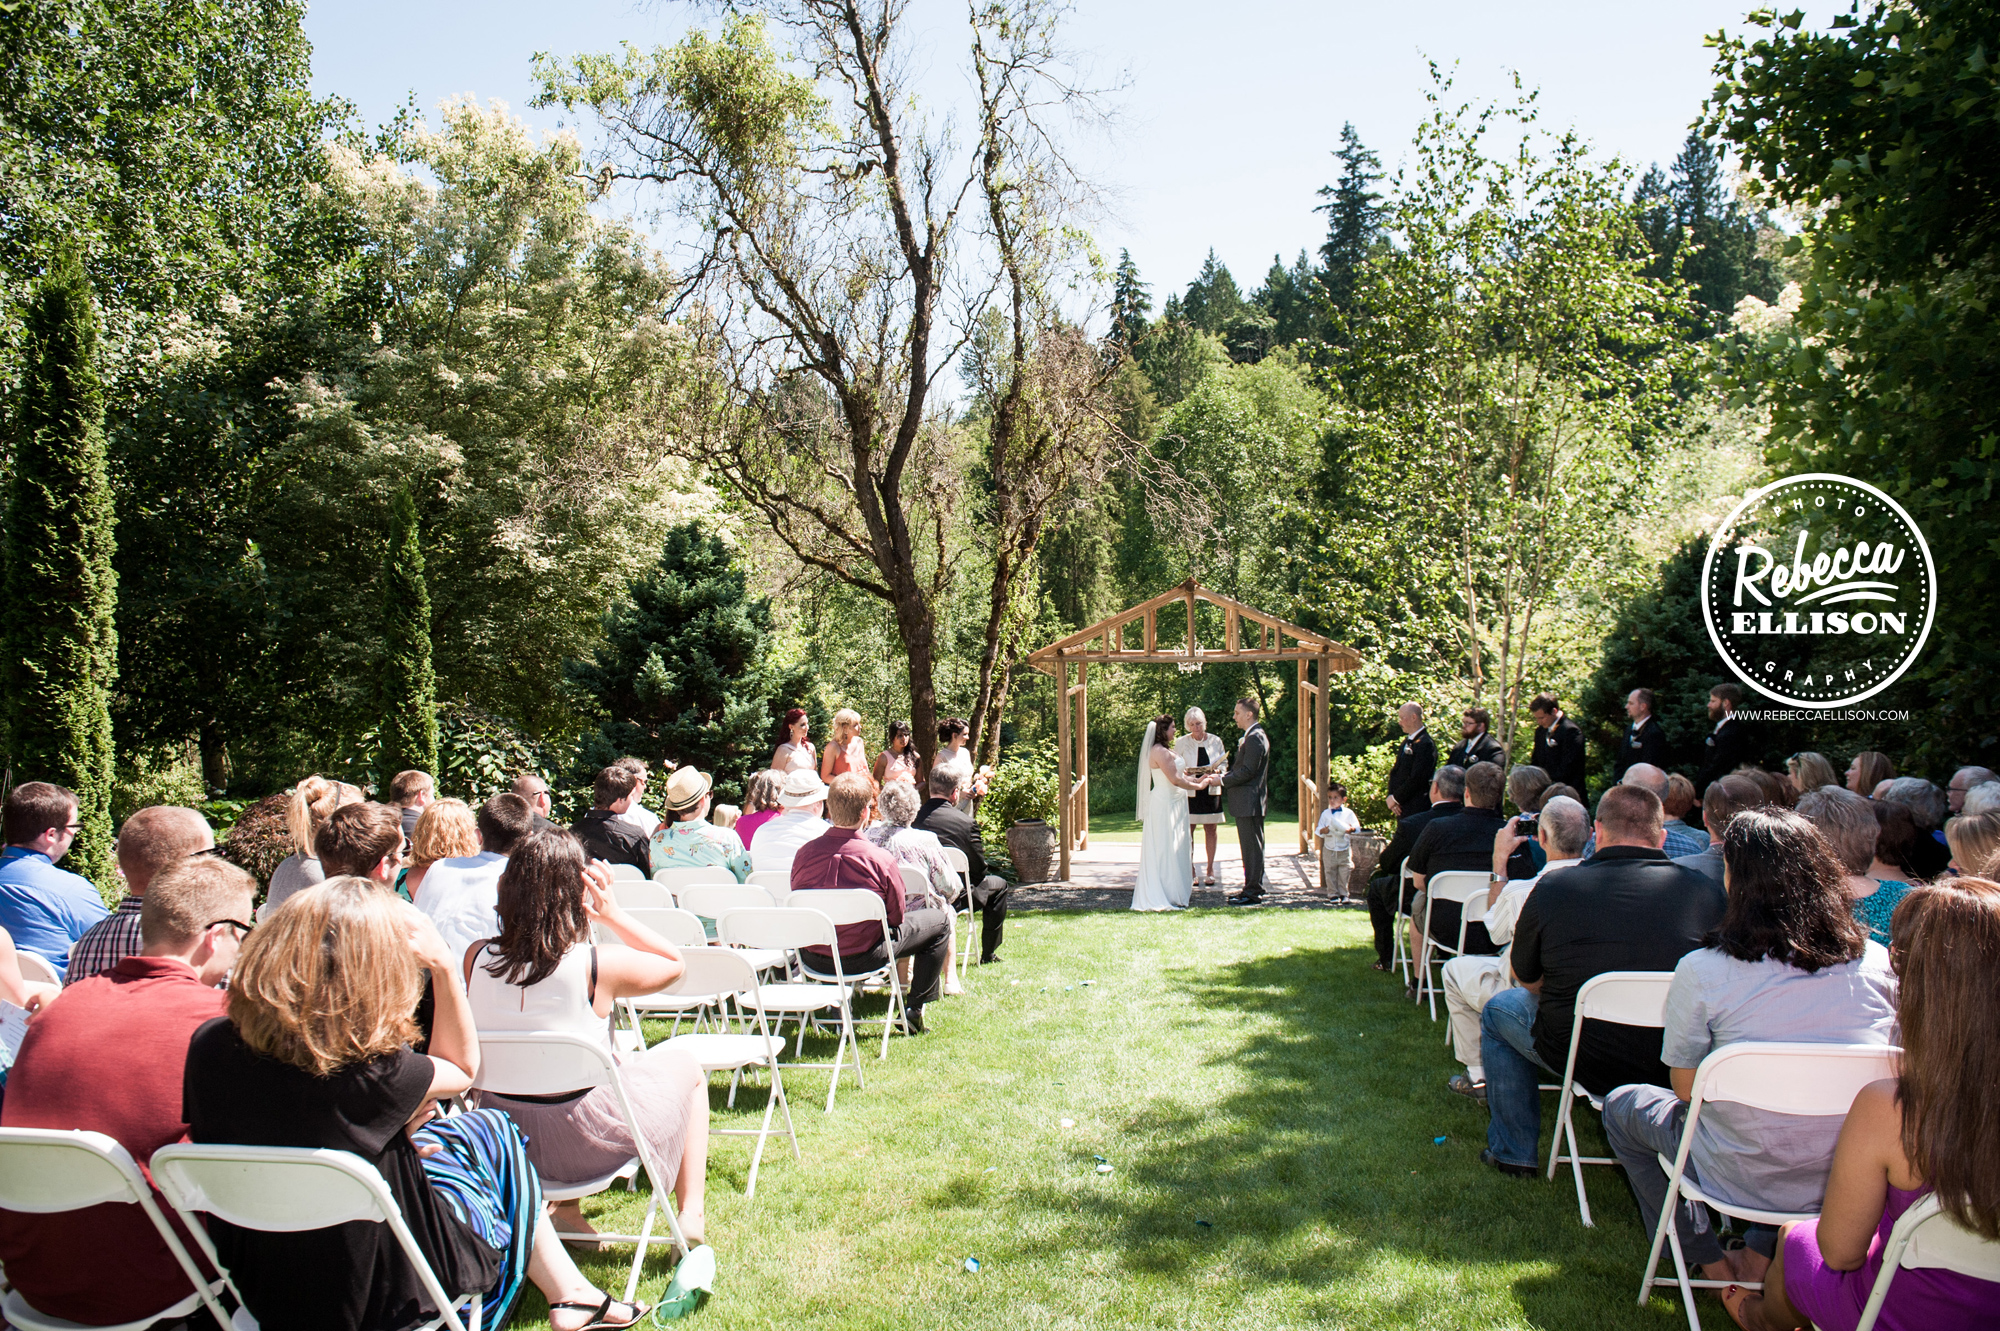 Wedding ceremony at Jardin del Sol photographed by Seattle wedding photographer Rebecca Ellison